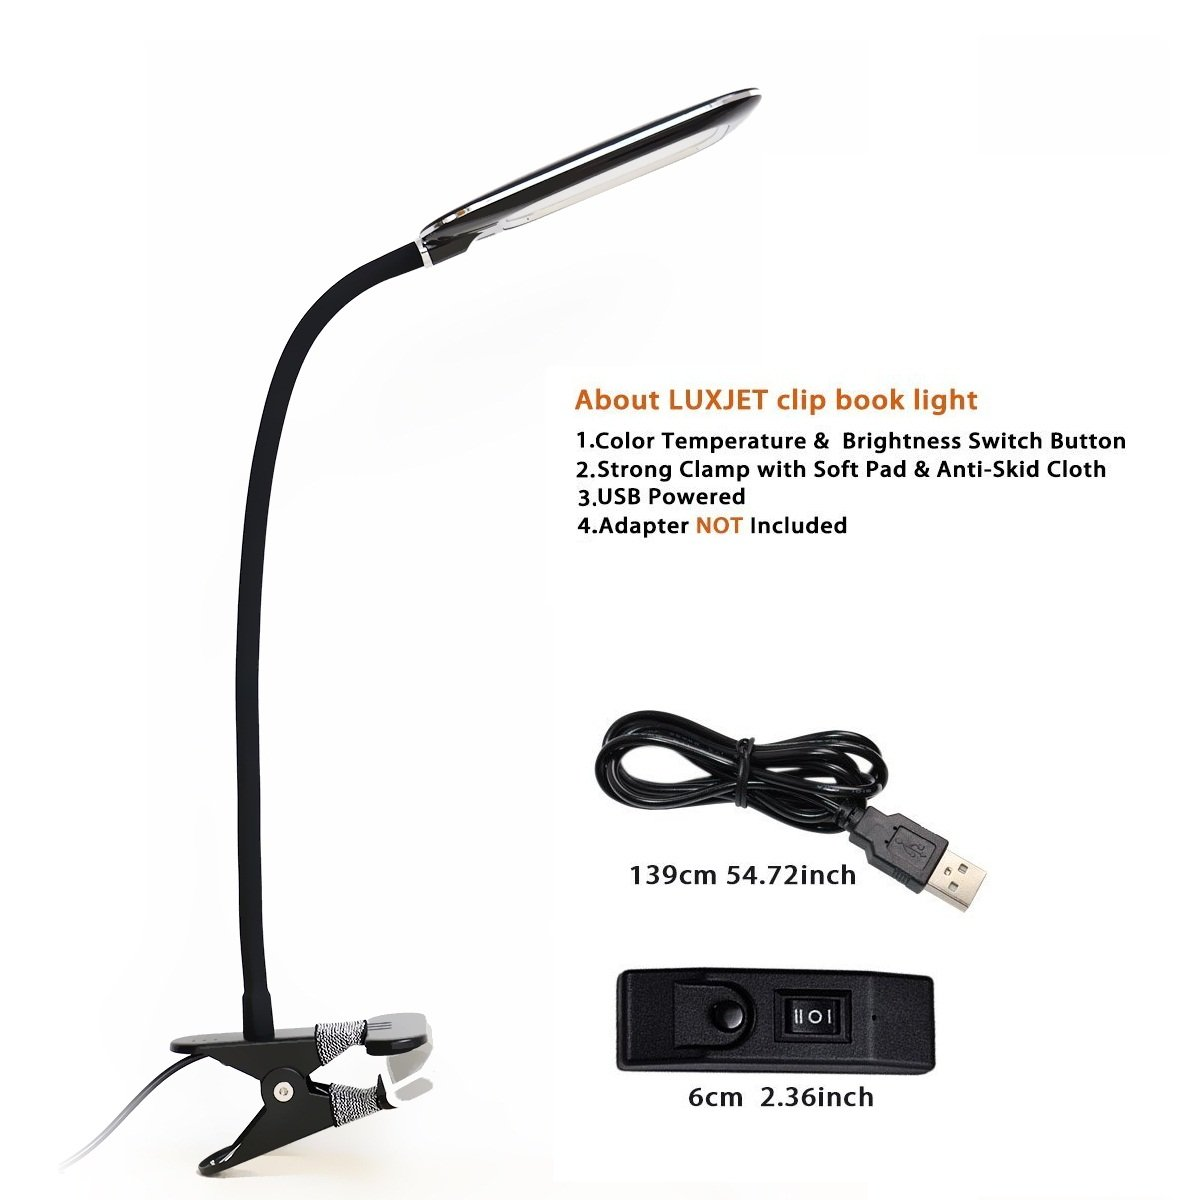 LUXJET LED Book Light Clip Lights, 12LED 5W Desk Lamp ,3 Color Lighting Modes (Warm /daylight/Cool White), 2 Level Dimmable USB Clamp,Flexible Gooseneck with IP3X Eye Protection for Bed Readers, Kids,